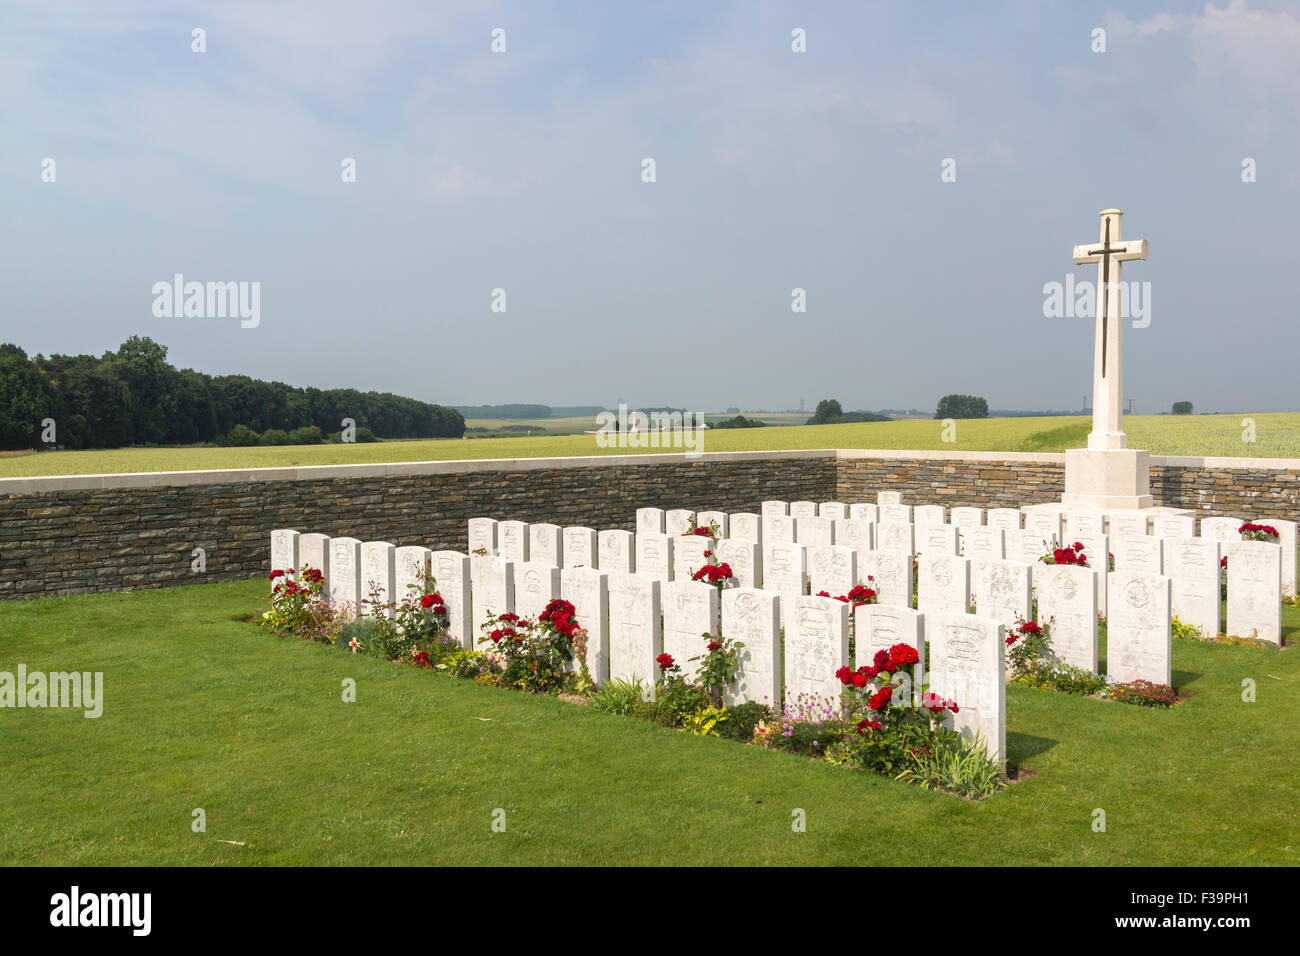 July 1st 1916 Stock Photos & July 1st 1916 Stock Images - Alamy